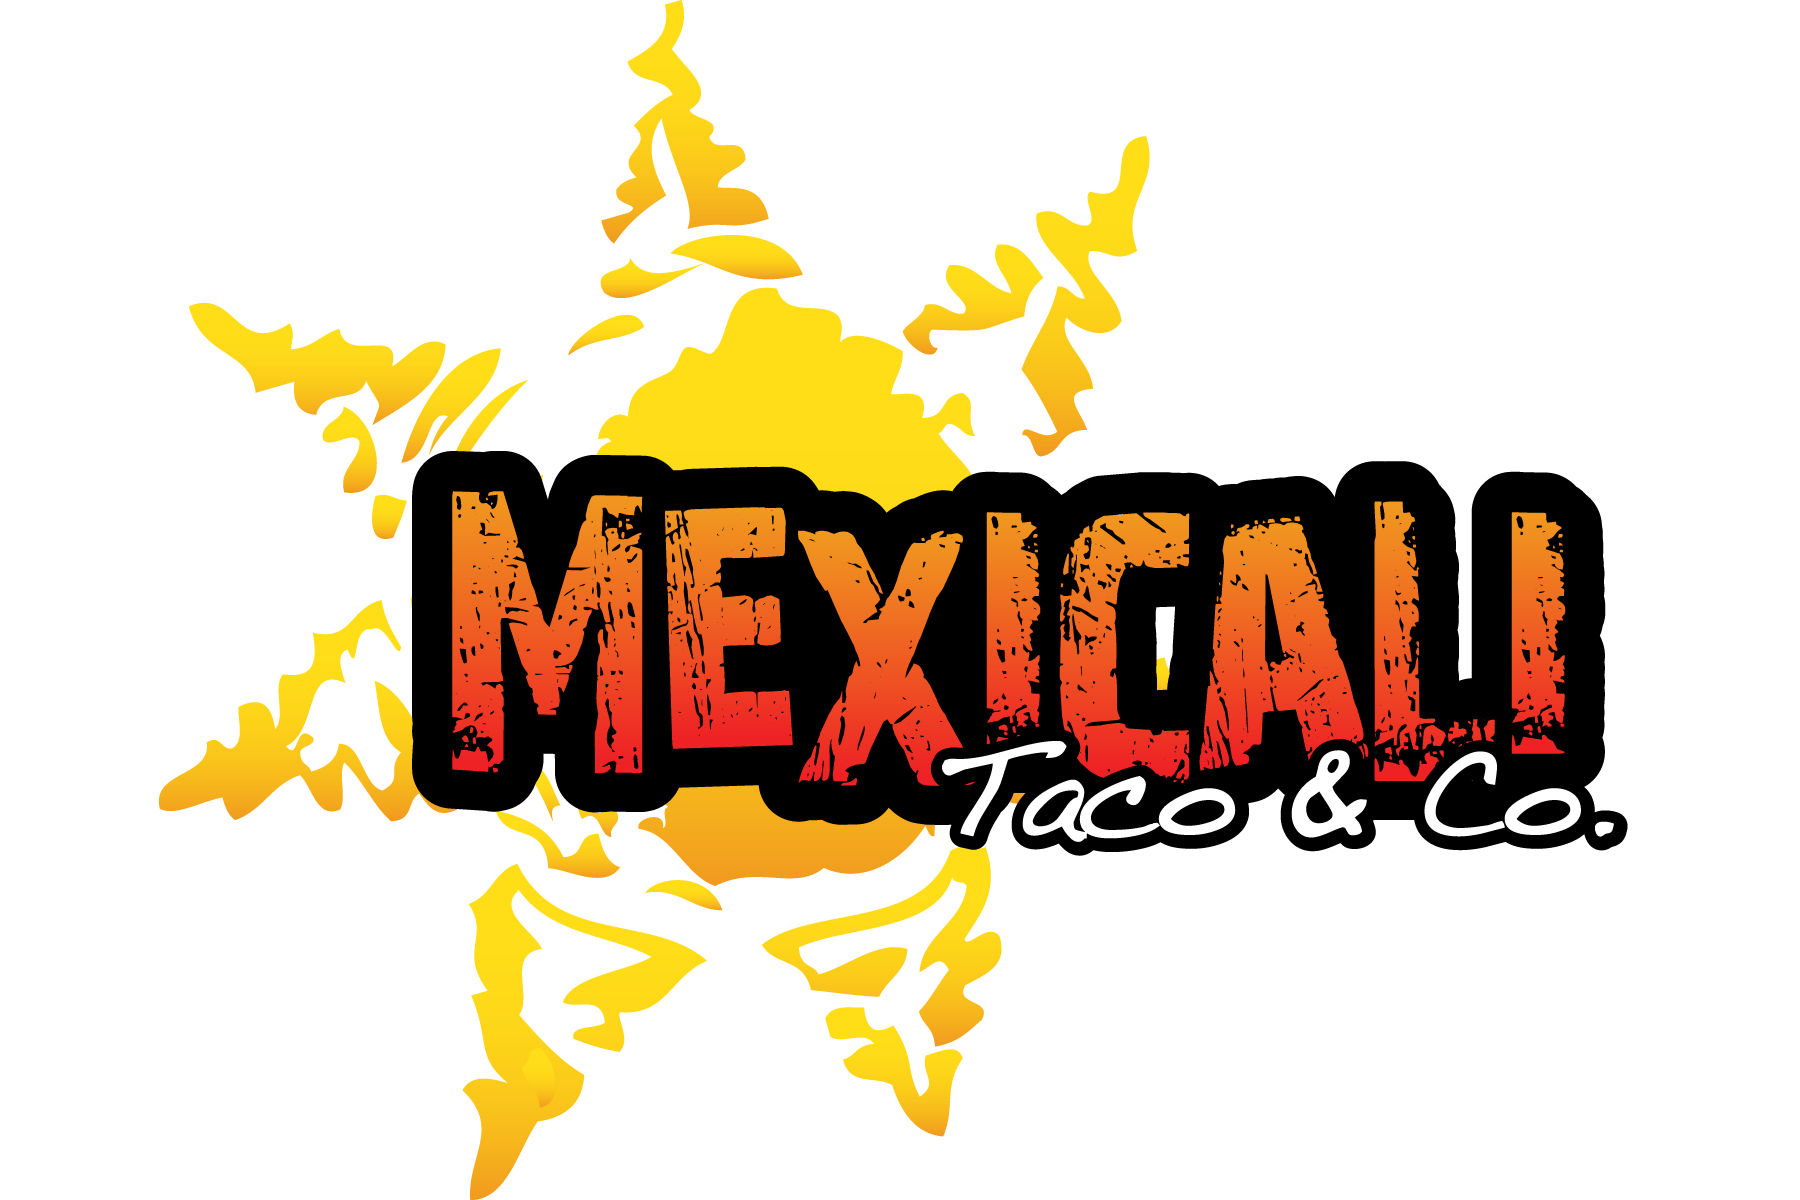 """FOOD SPONSOR:    MEXICALI TACO & CO.     mexicalitaco .com    702 N Figueroa St, Los Angeles, CA 90012, Phone: (213) 613-0416  Mexicali Taco & Co. has garnered much popularity and accolades with their Northern Baja centric cuisine that focuses on flame-grilled meats and abundant salsa bar. Bringingthe street food experience to Los Angeles,their signature red picnic benches and casual atmosphere makes for a wonderful taqueria experience!Along with being featured on various TV food programs, they are on """"LA Times Best 101"""" by Jonathan Gold, winners of """"LA Taco Madness"""" in 2011 & 2013, and a fixture on """"Best Taco"""" lists not only in the city, but across the country."""